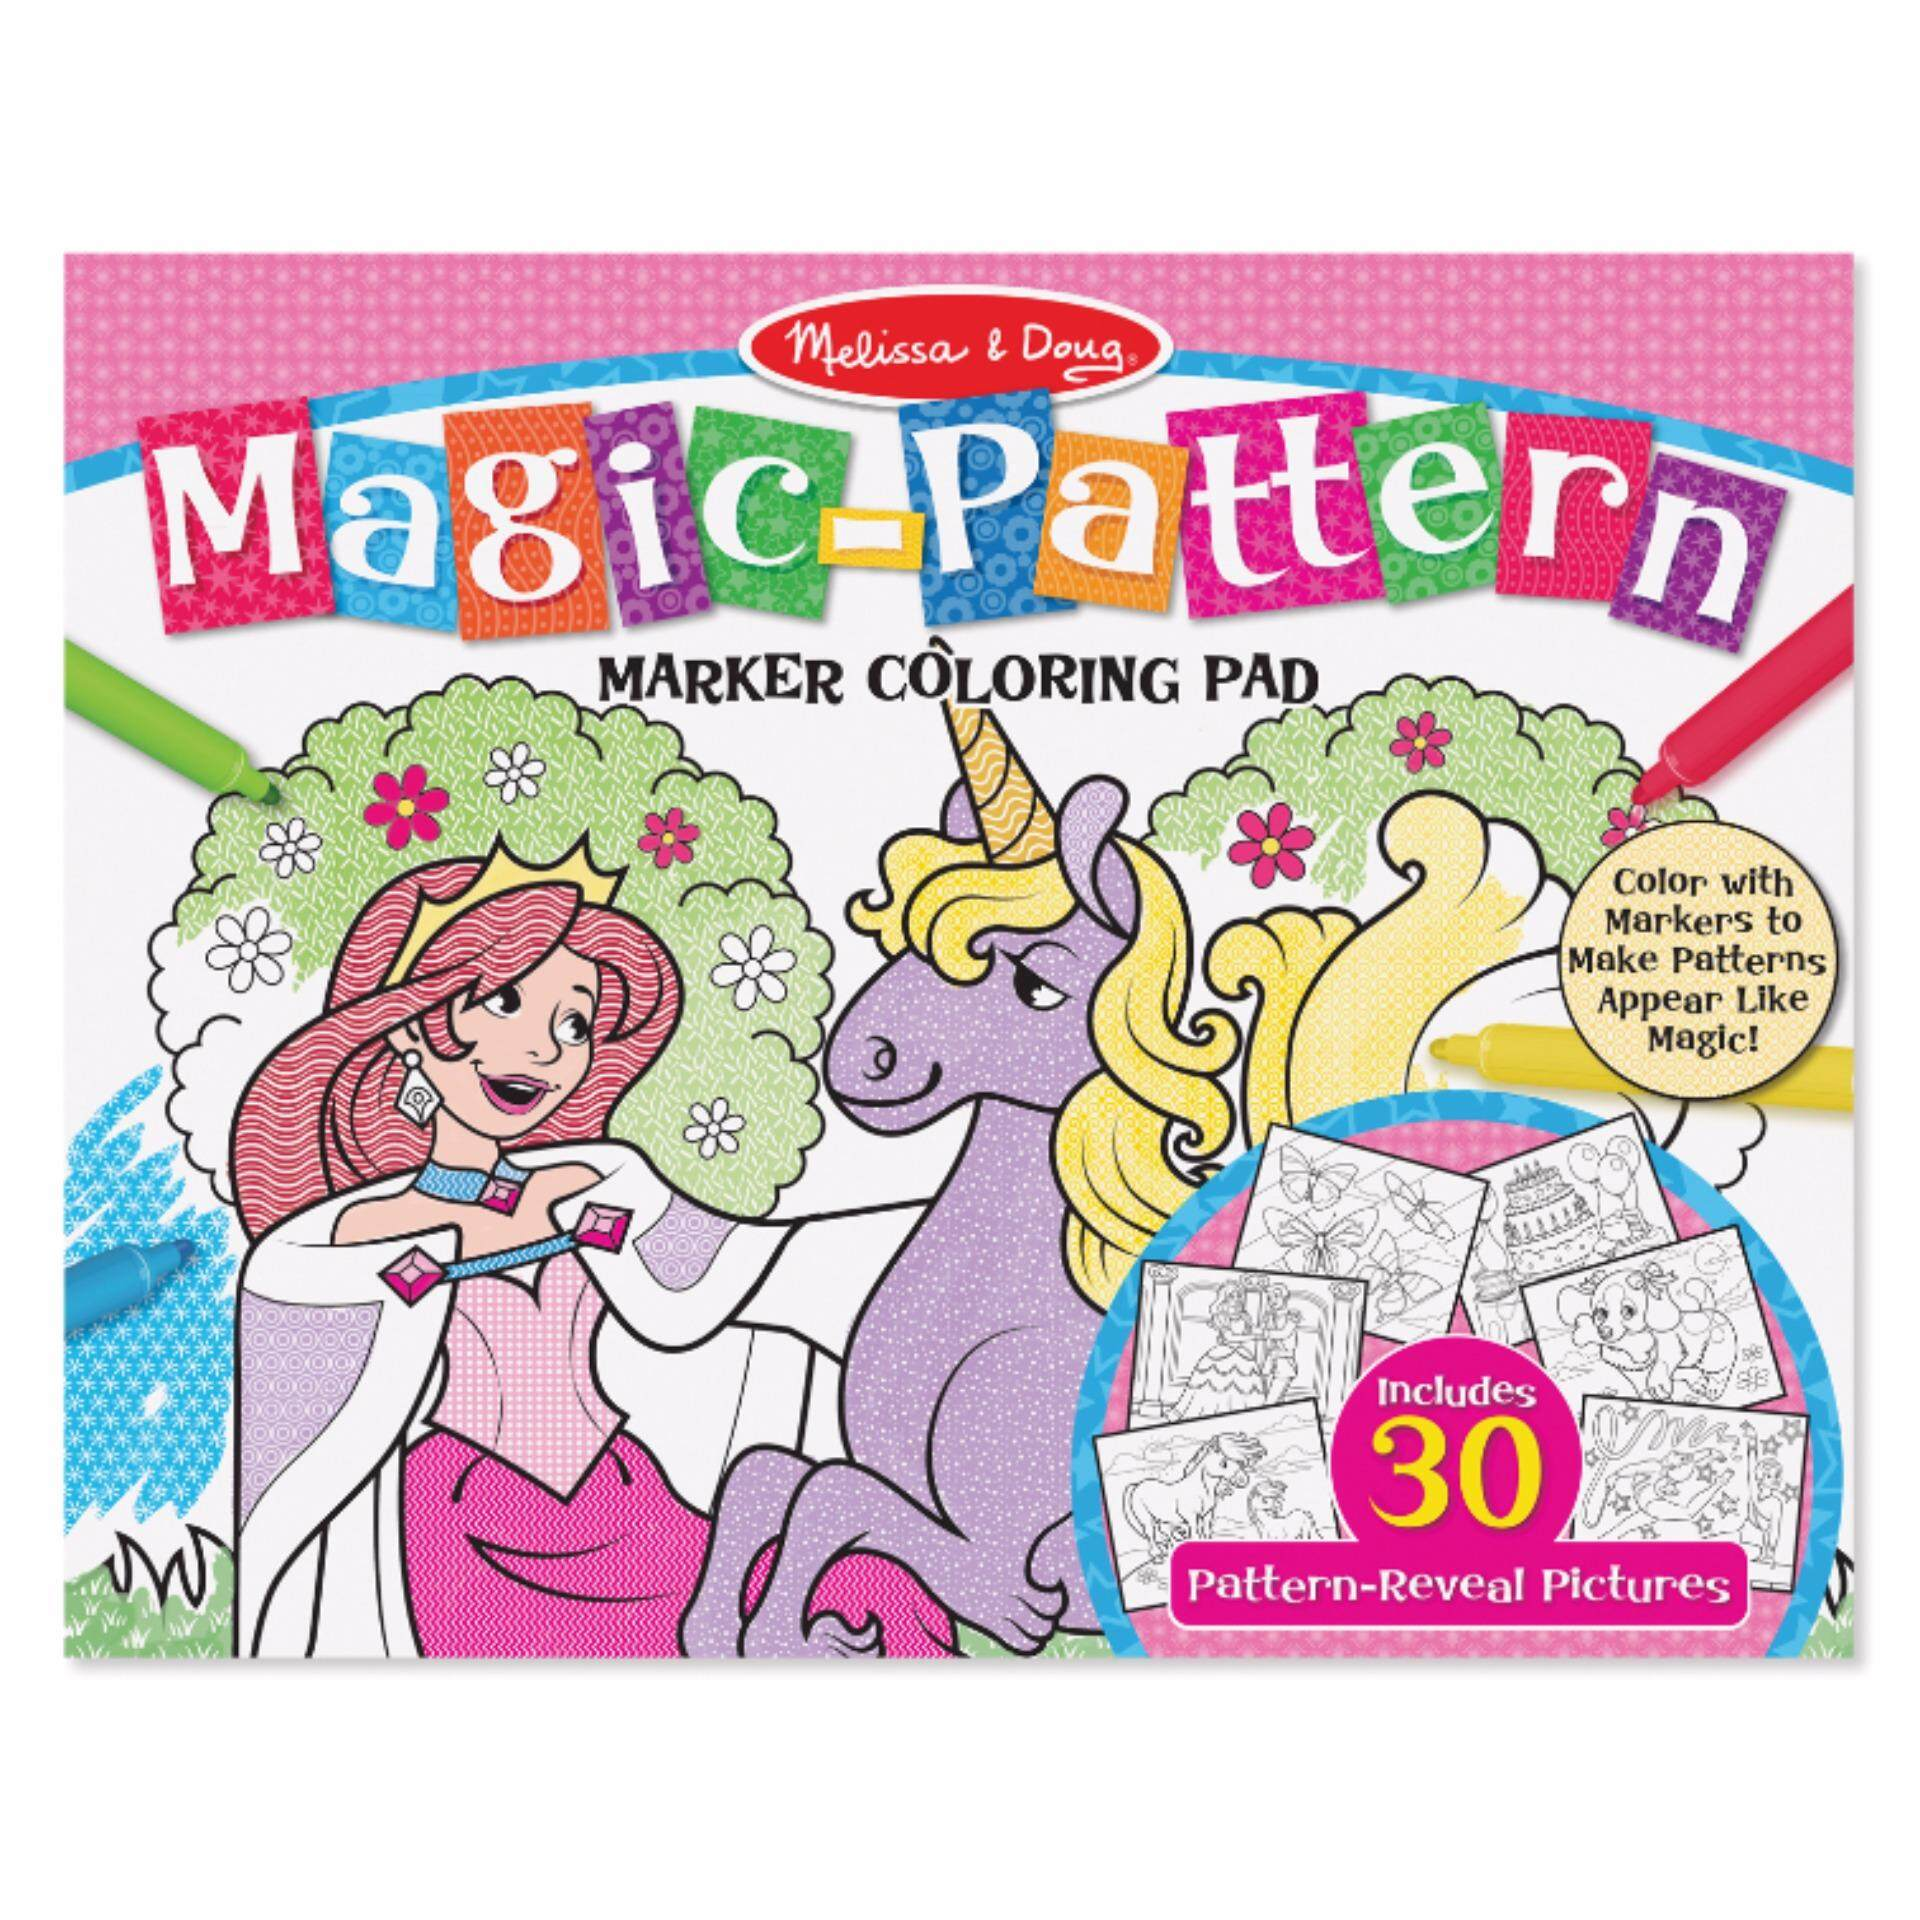 Melissa & Doug Magic Pattern Marker Coloring Pad - Pink